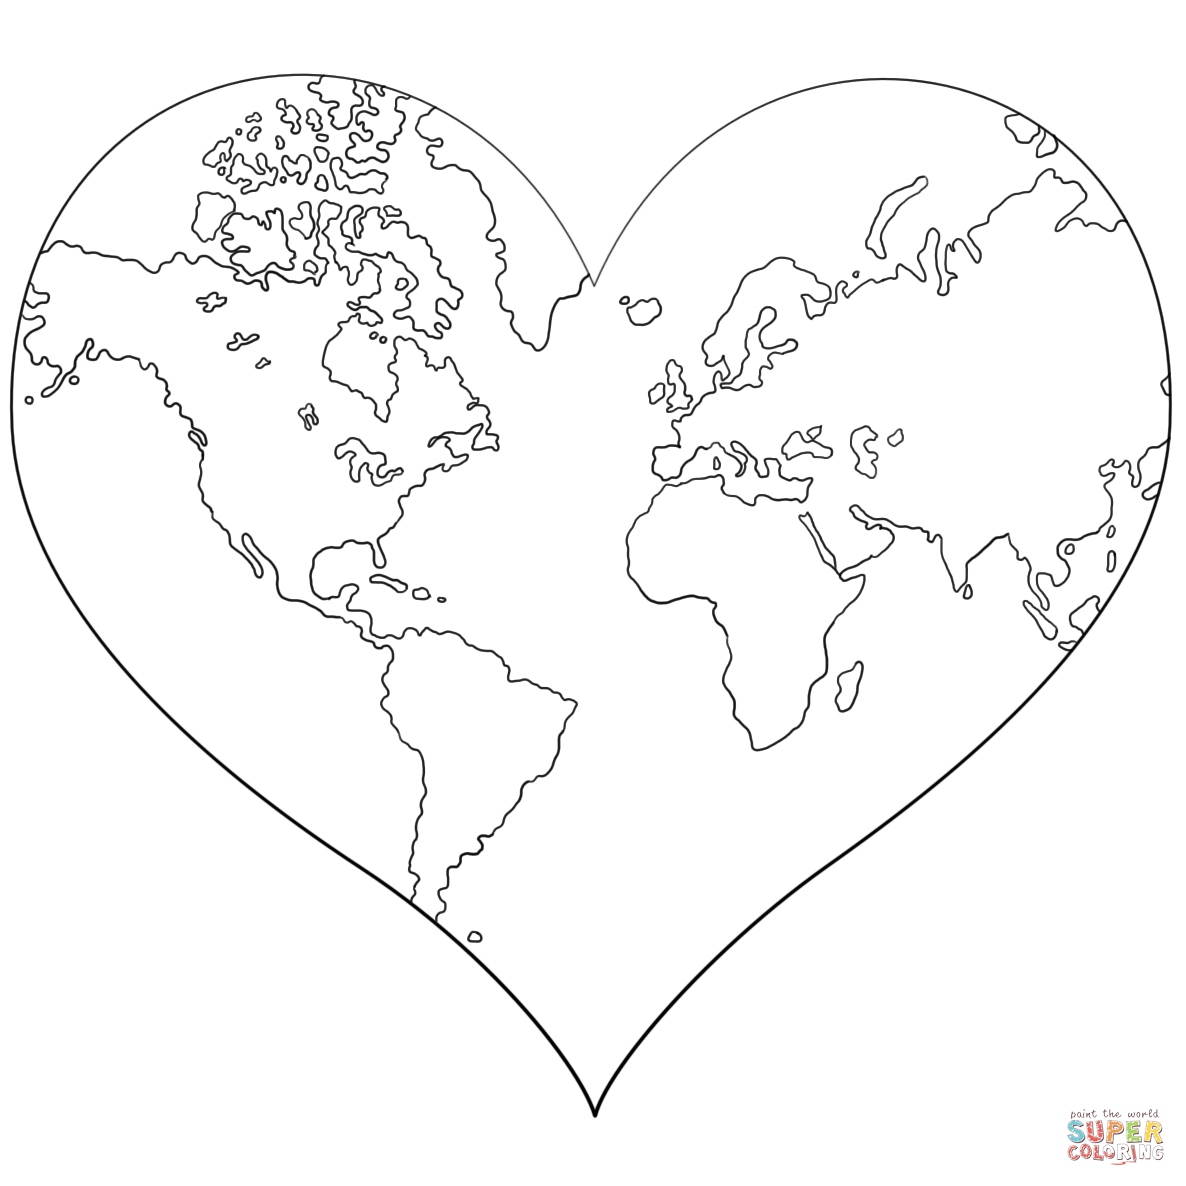 1186x1186 Willpower Picture Of The Earth To Color Awesom